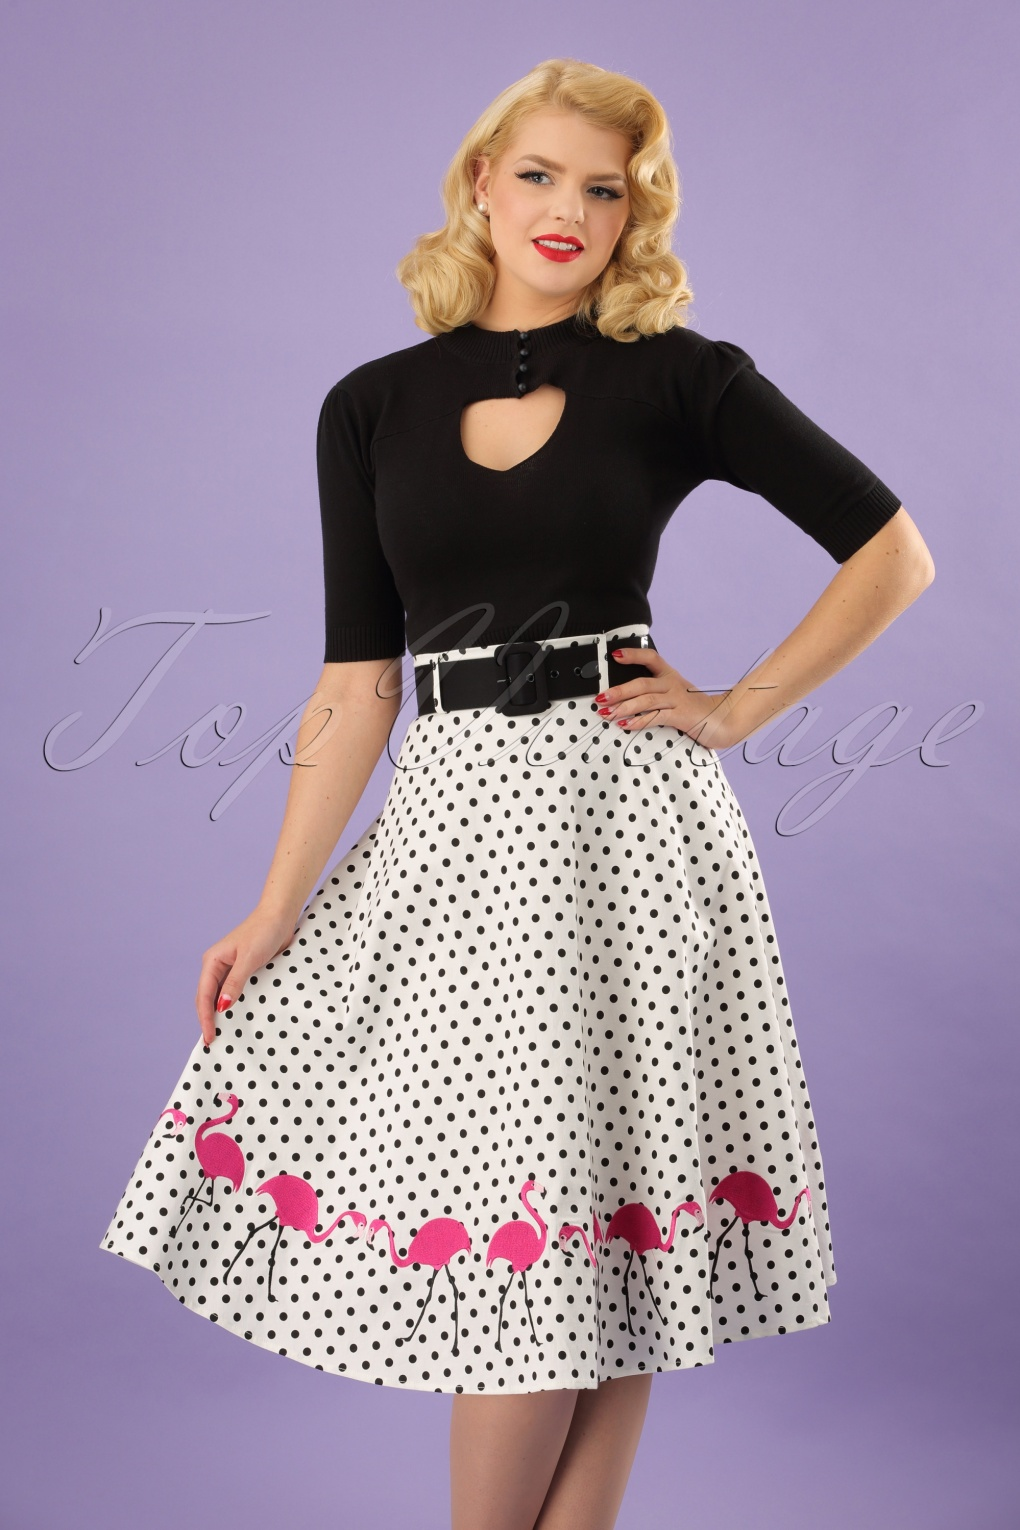 1950s Swing Skirt, Poodle Skirt, Pencil Skirts 50s Fancy Flamingo Swing Skirt in White £51.55 AT vintagedancer.com